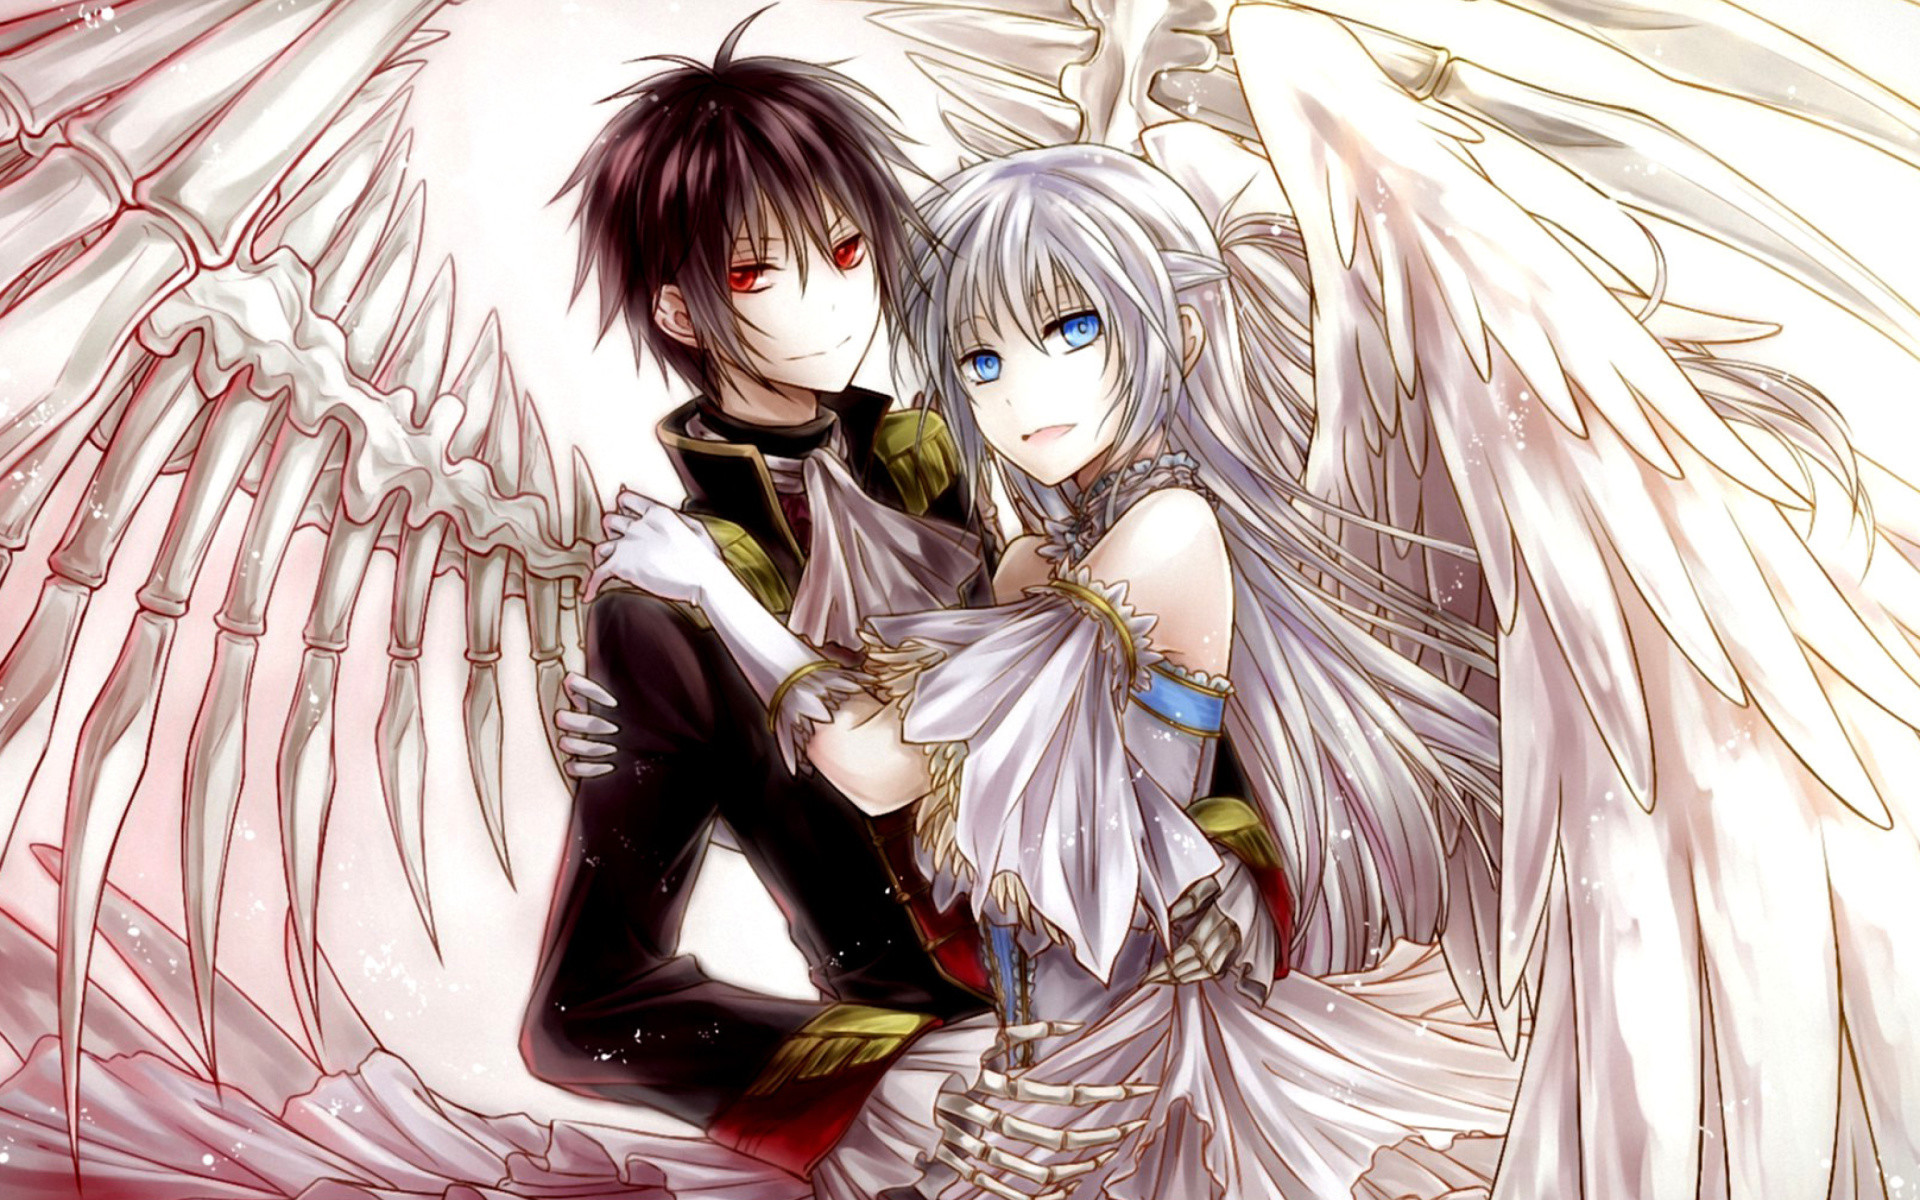 Beautiful Anime Couple Wallpaper HD Images One HD Wallpaper 736×552 Anime  Couple Wallpaper (